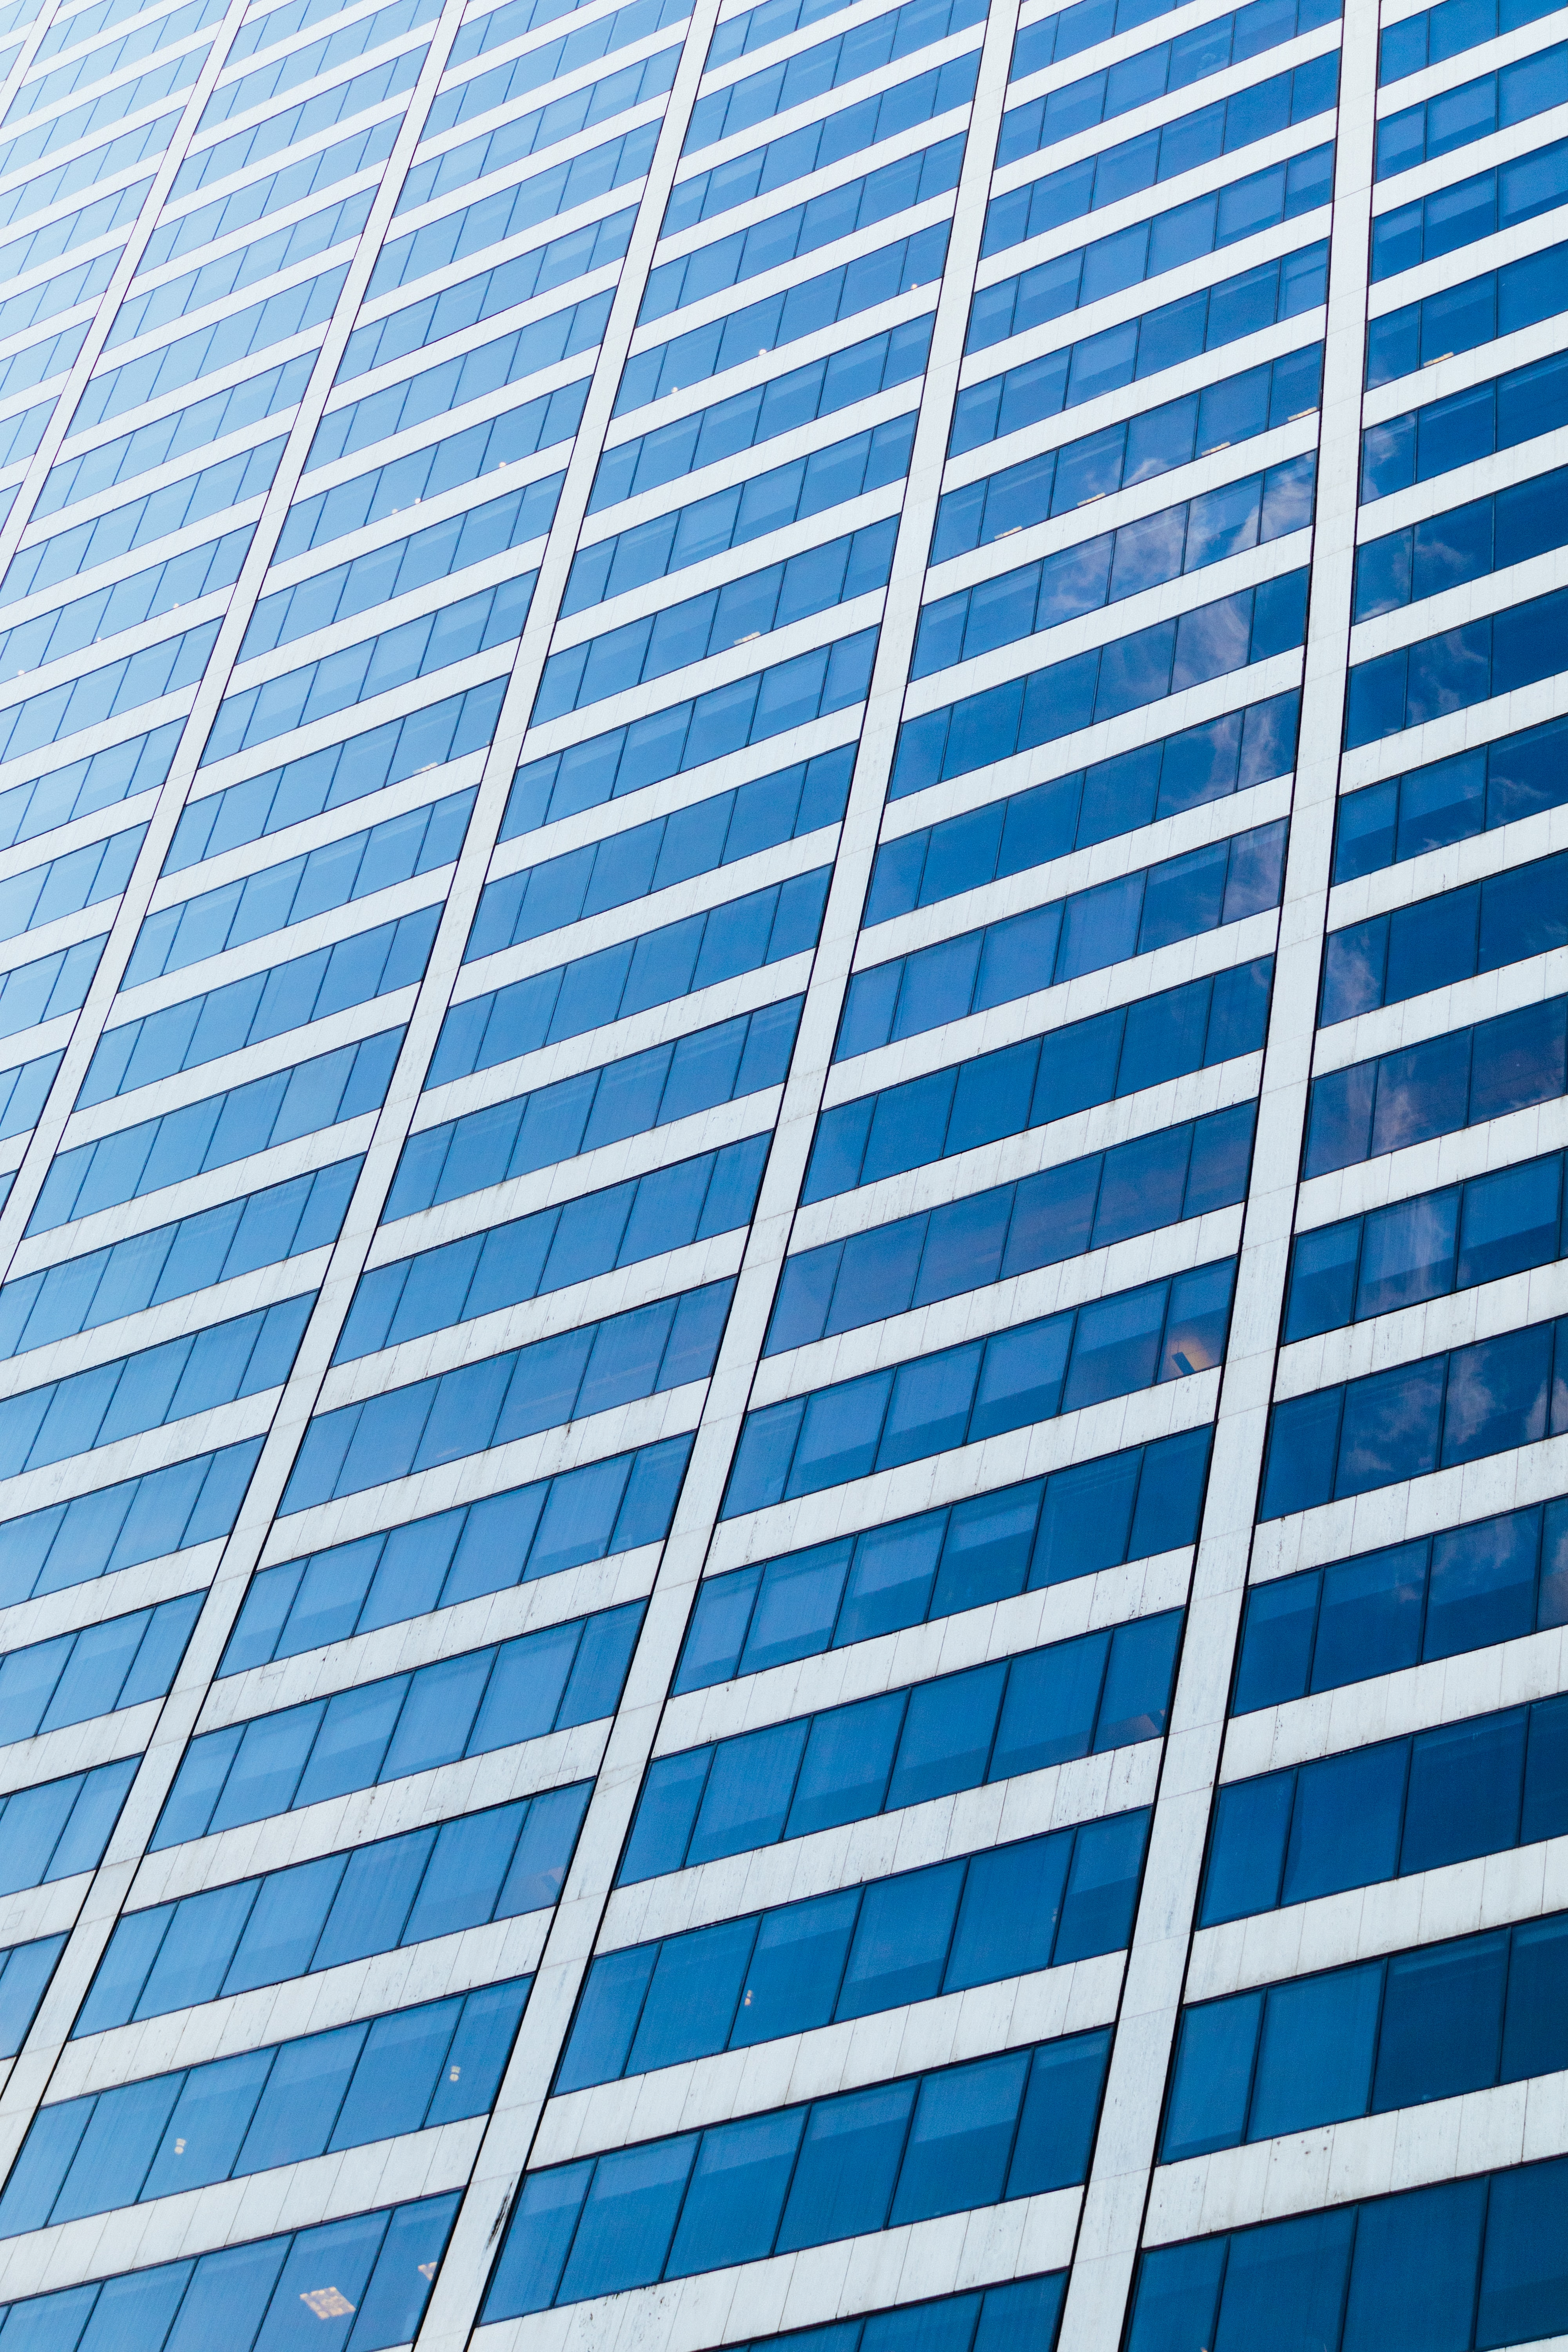 blue and white glass building during daytime